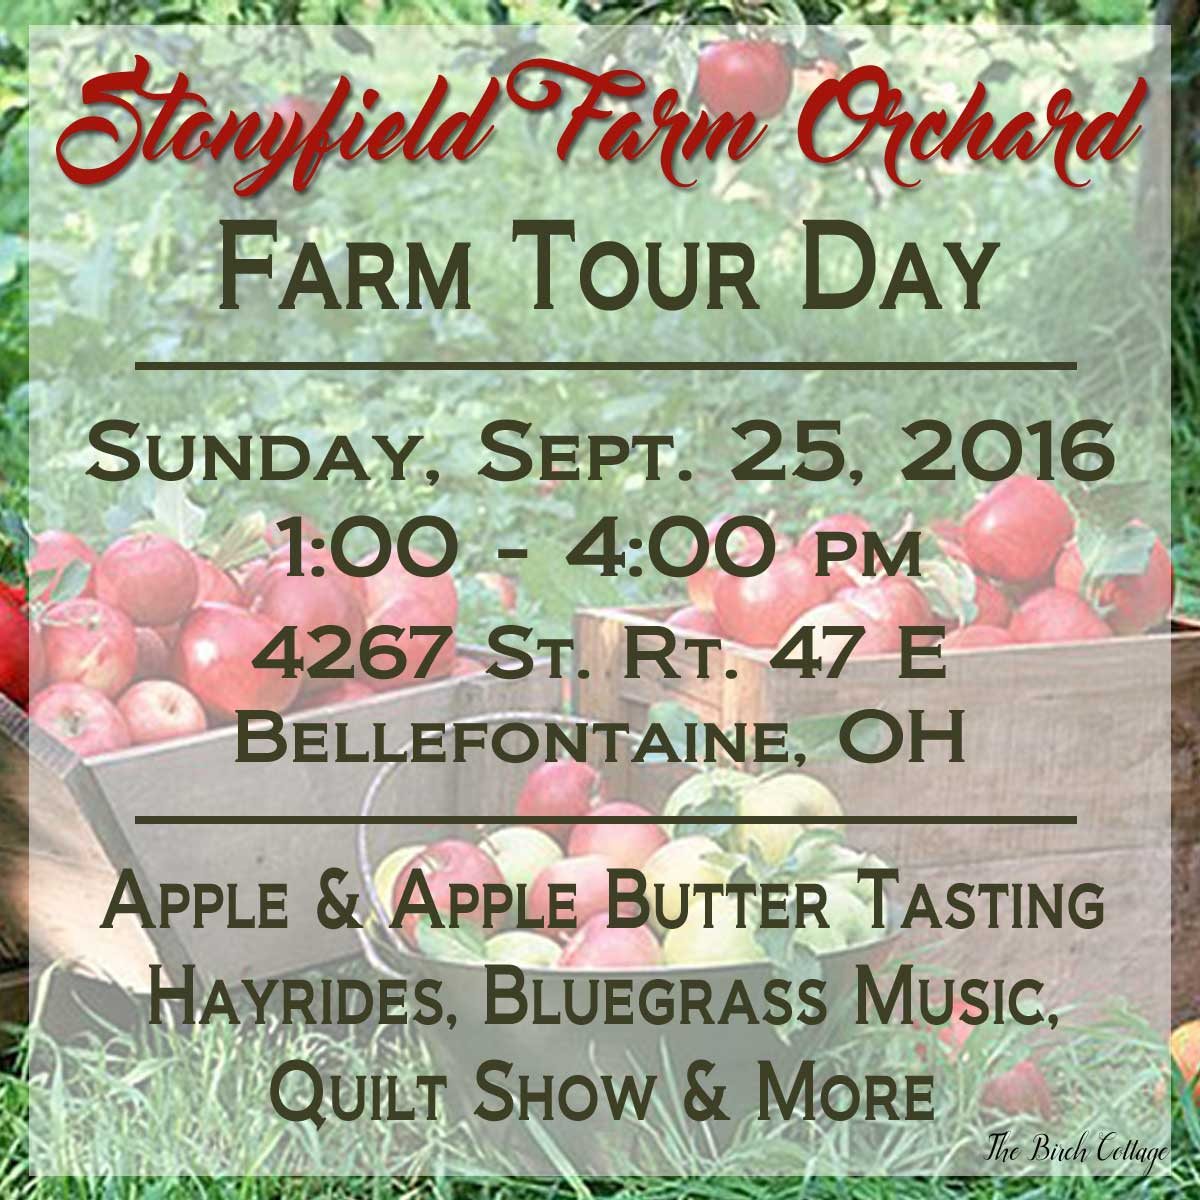 Stonyfield Farm Orchard